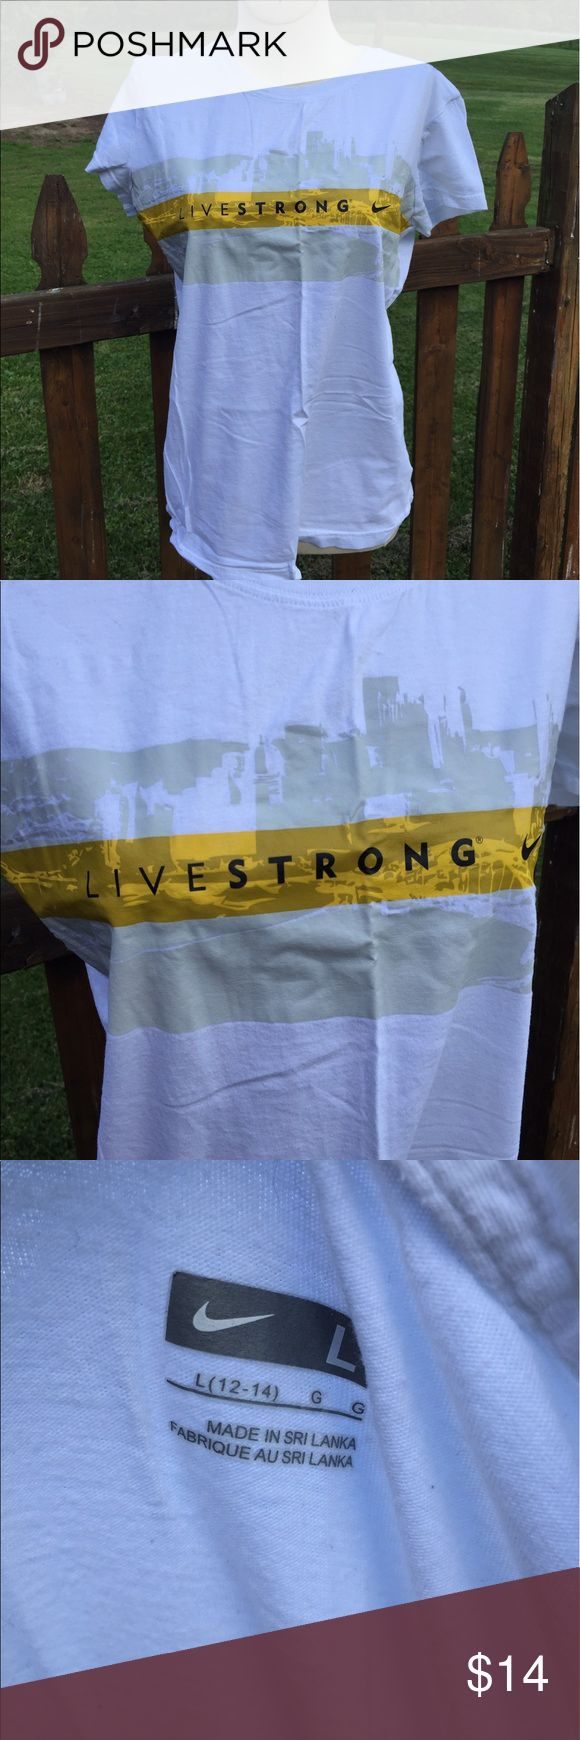 Nike Livestrong T Shirt Size Large Size large. Super gently preowned. Be sure to view the other items in our closet. We offer  women's, Mens and kids items in a variety of sizes. Bundle and save!! Thank you for viewing our item!! Nike Tops Tees - Short Sleeve